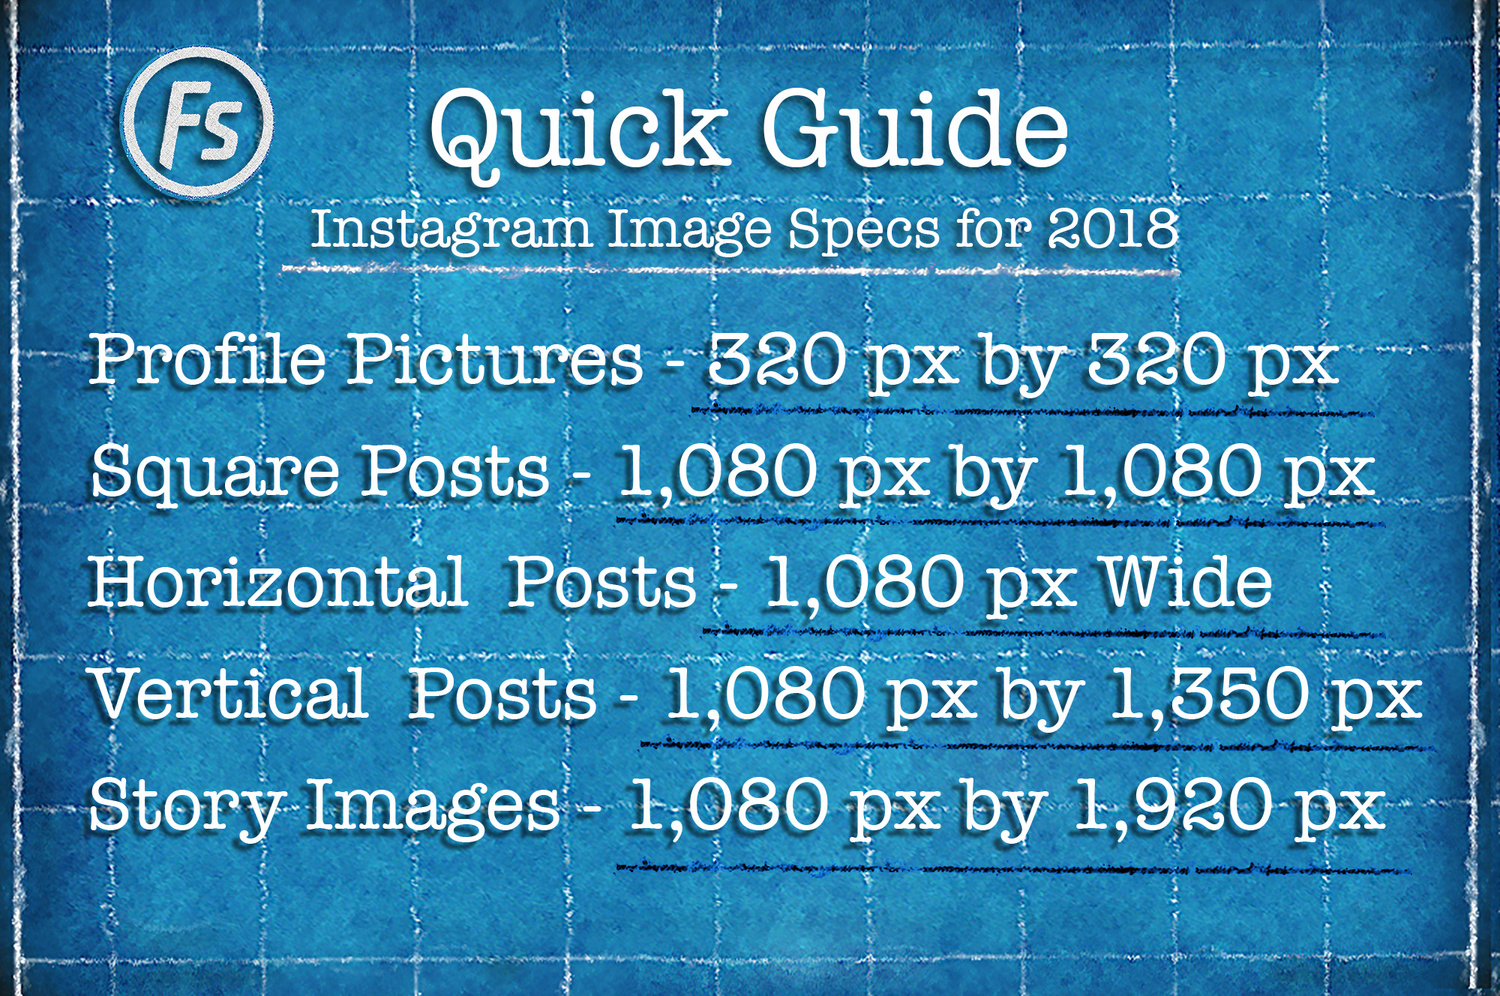 Instagram Image Sizes for 2018: Download These Free Templates